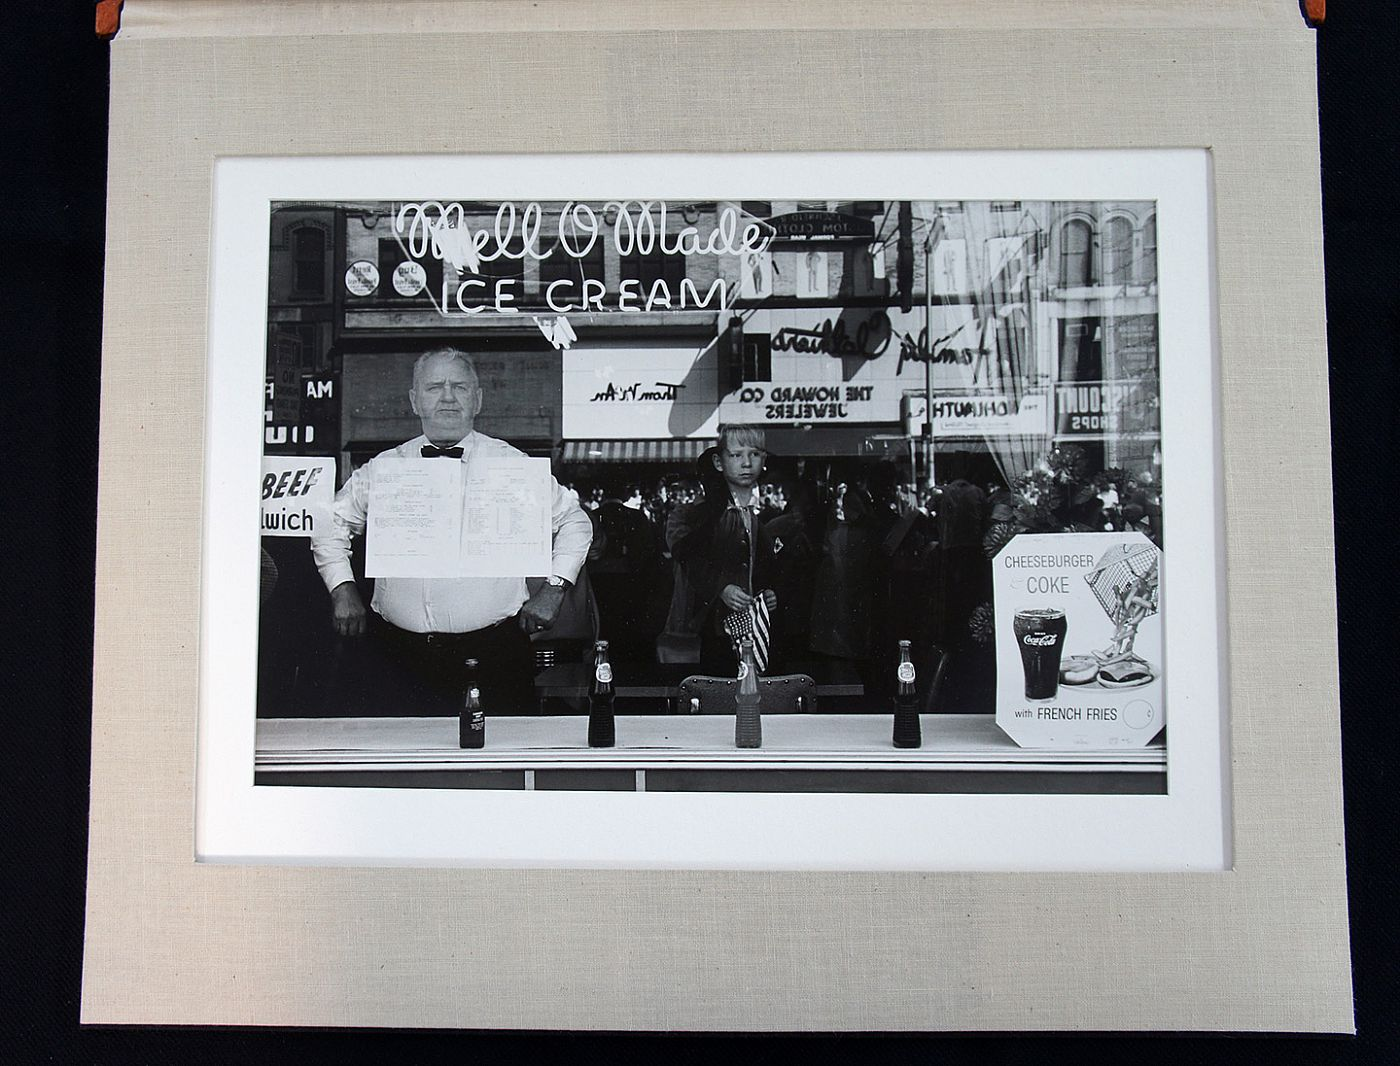 Lee Friedlander: Photographs (Special Limited Edition with Two Vintage Gelatin Silver Prints)